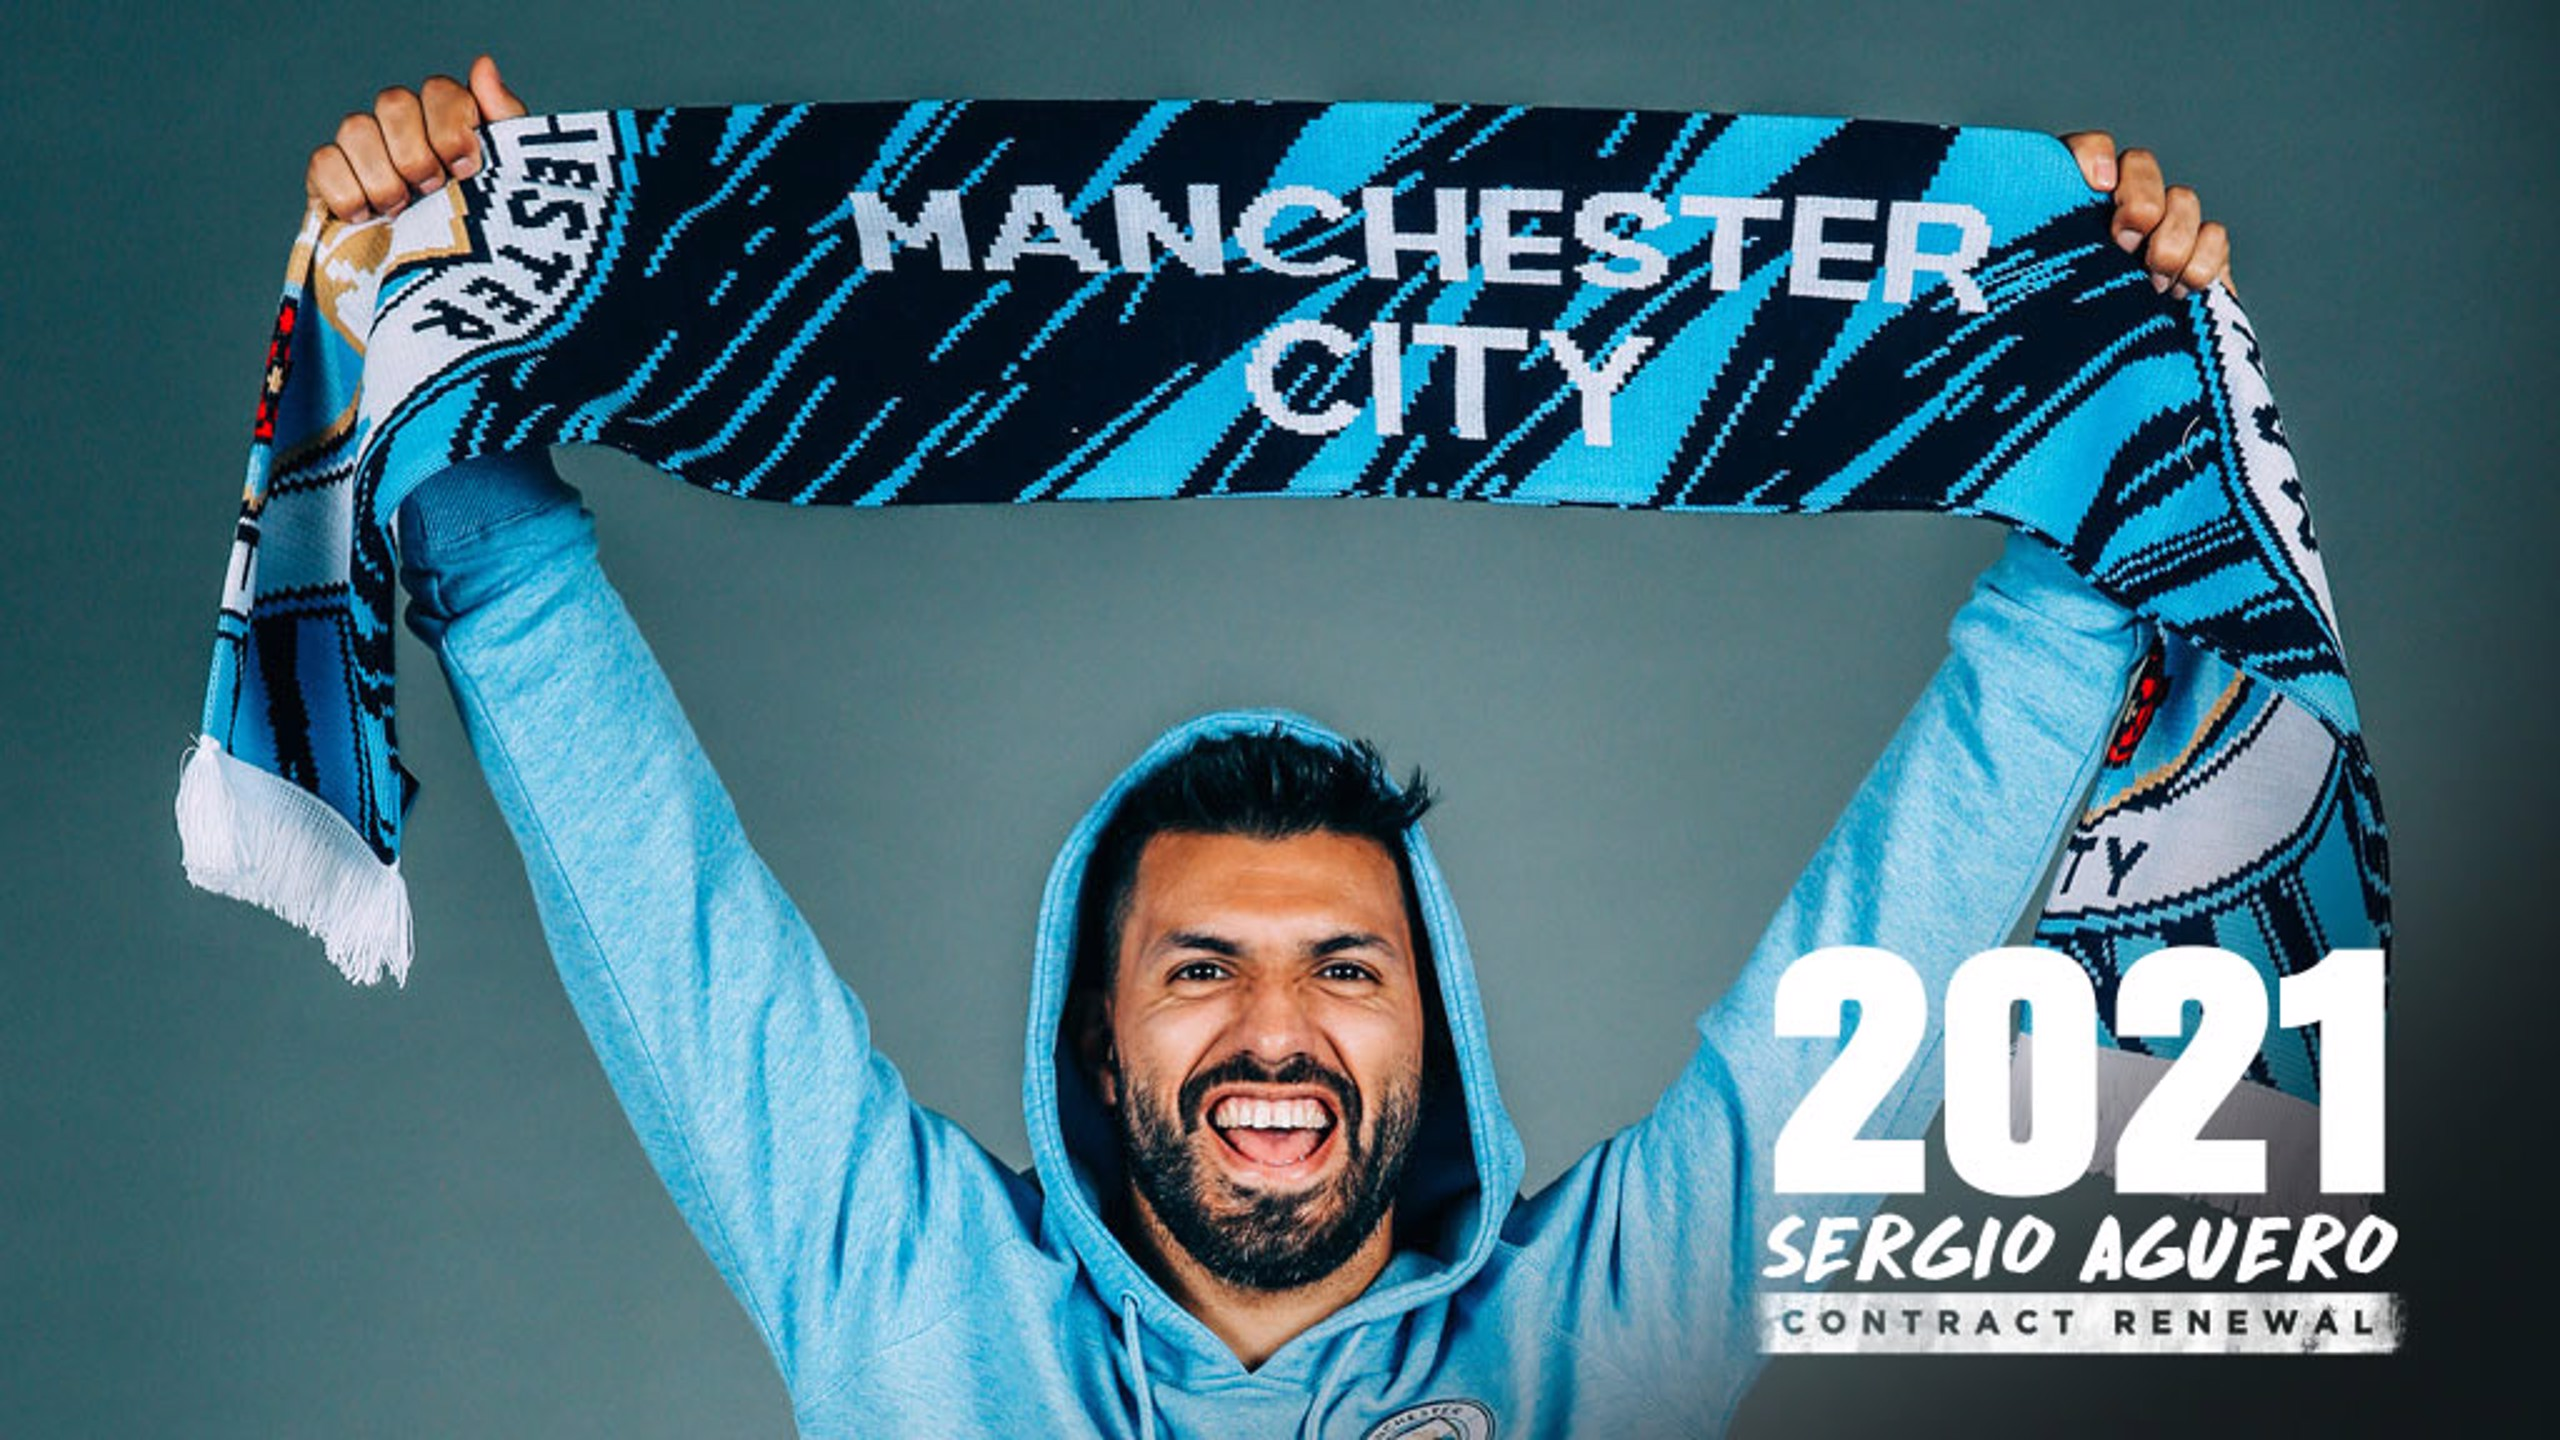 TRUE BLUE: Sergio Aguero